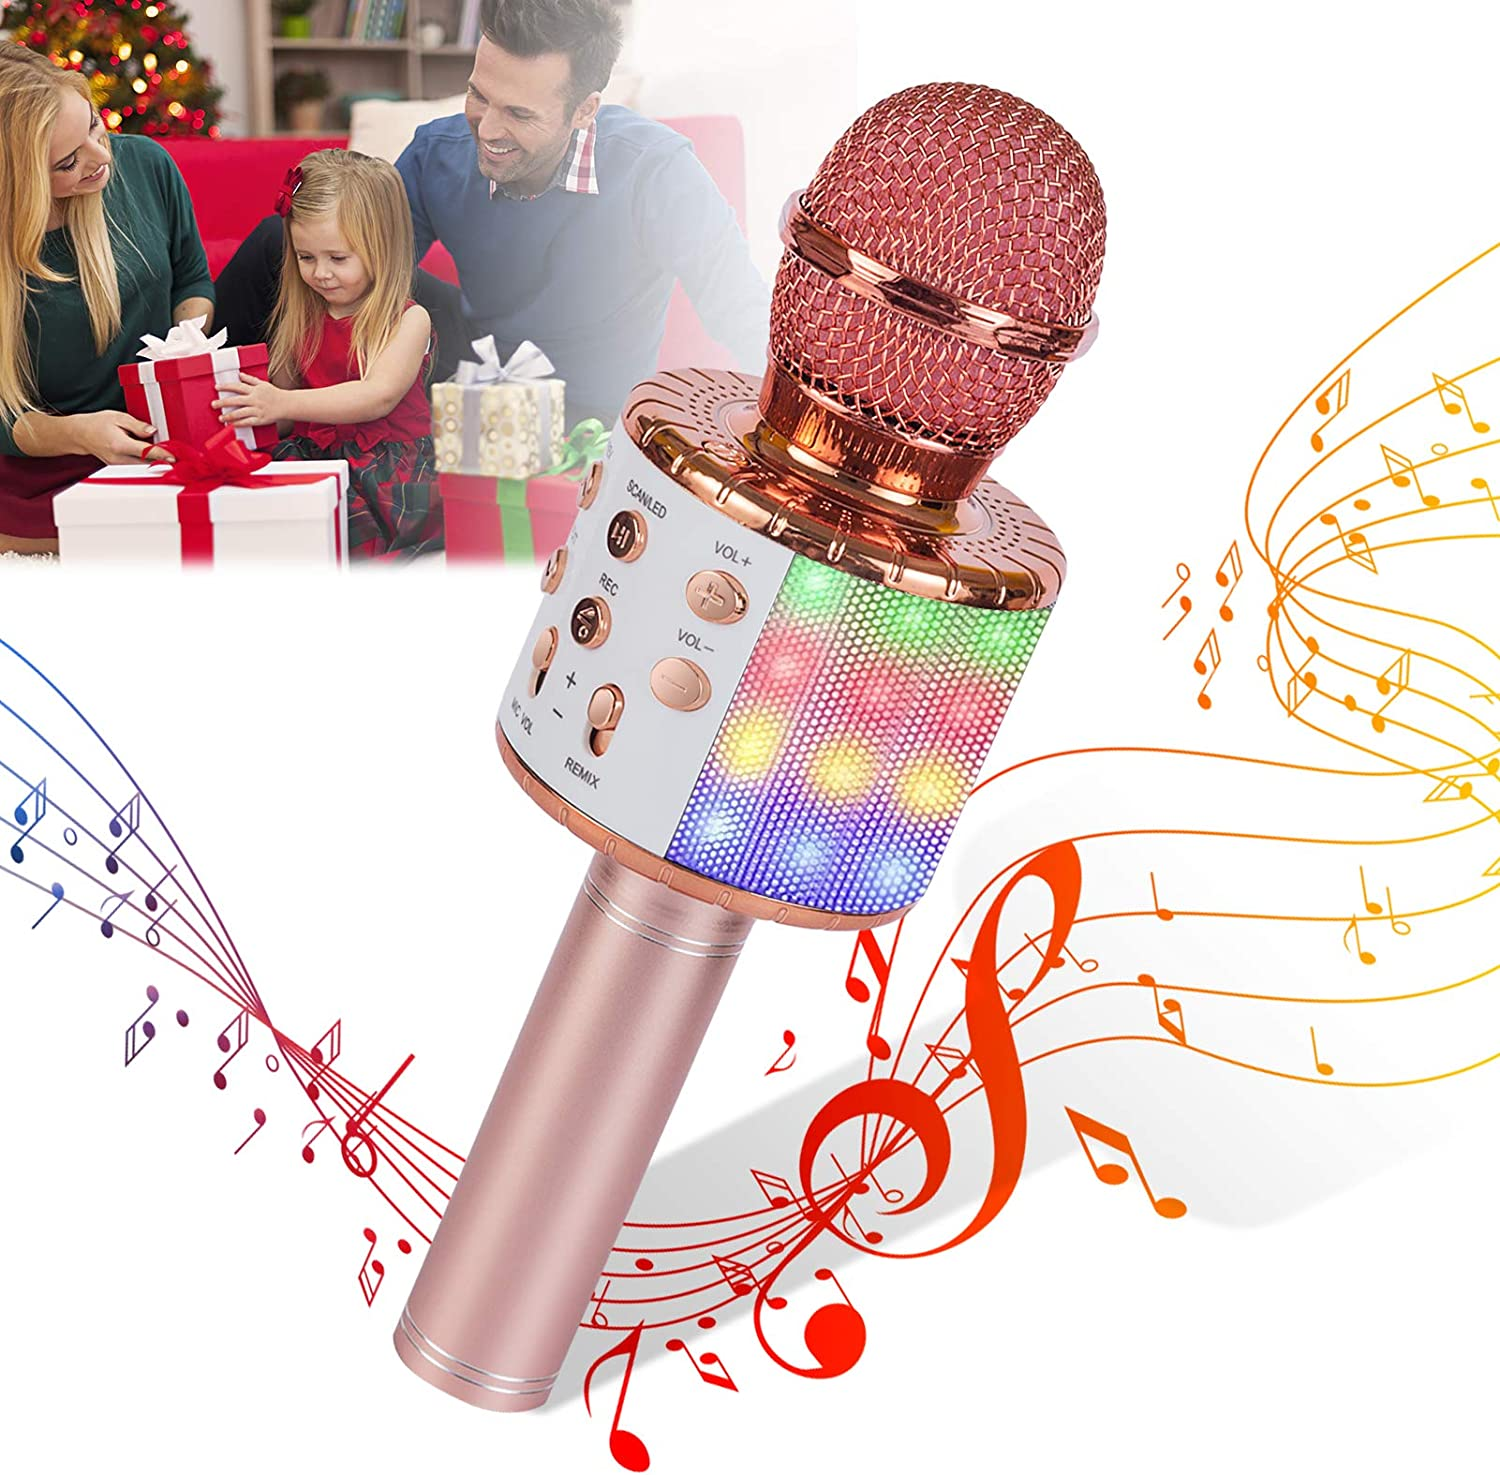 Kids Wireless Microphone Wireless Karaoke Microphone for Kids Girl Rose Gold Bluetooth Voice Changing Microphone with LED Lights Best Gift Toy Microphone for Kids Christmas